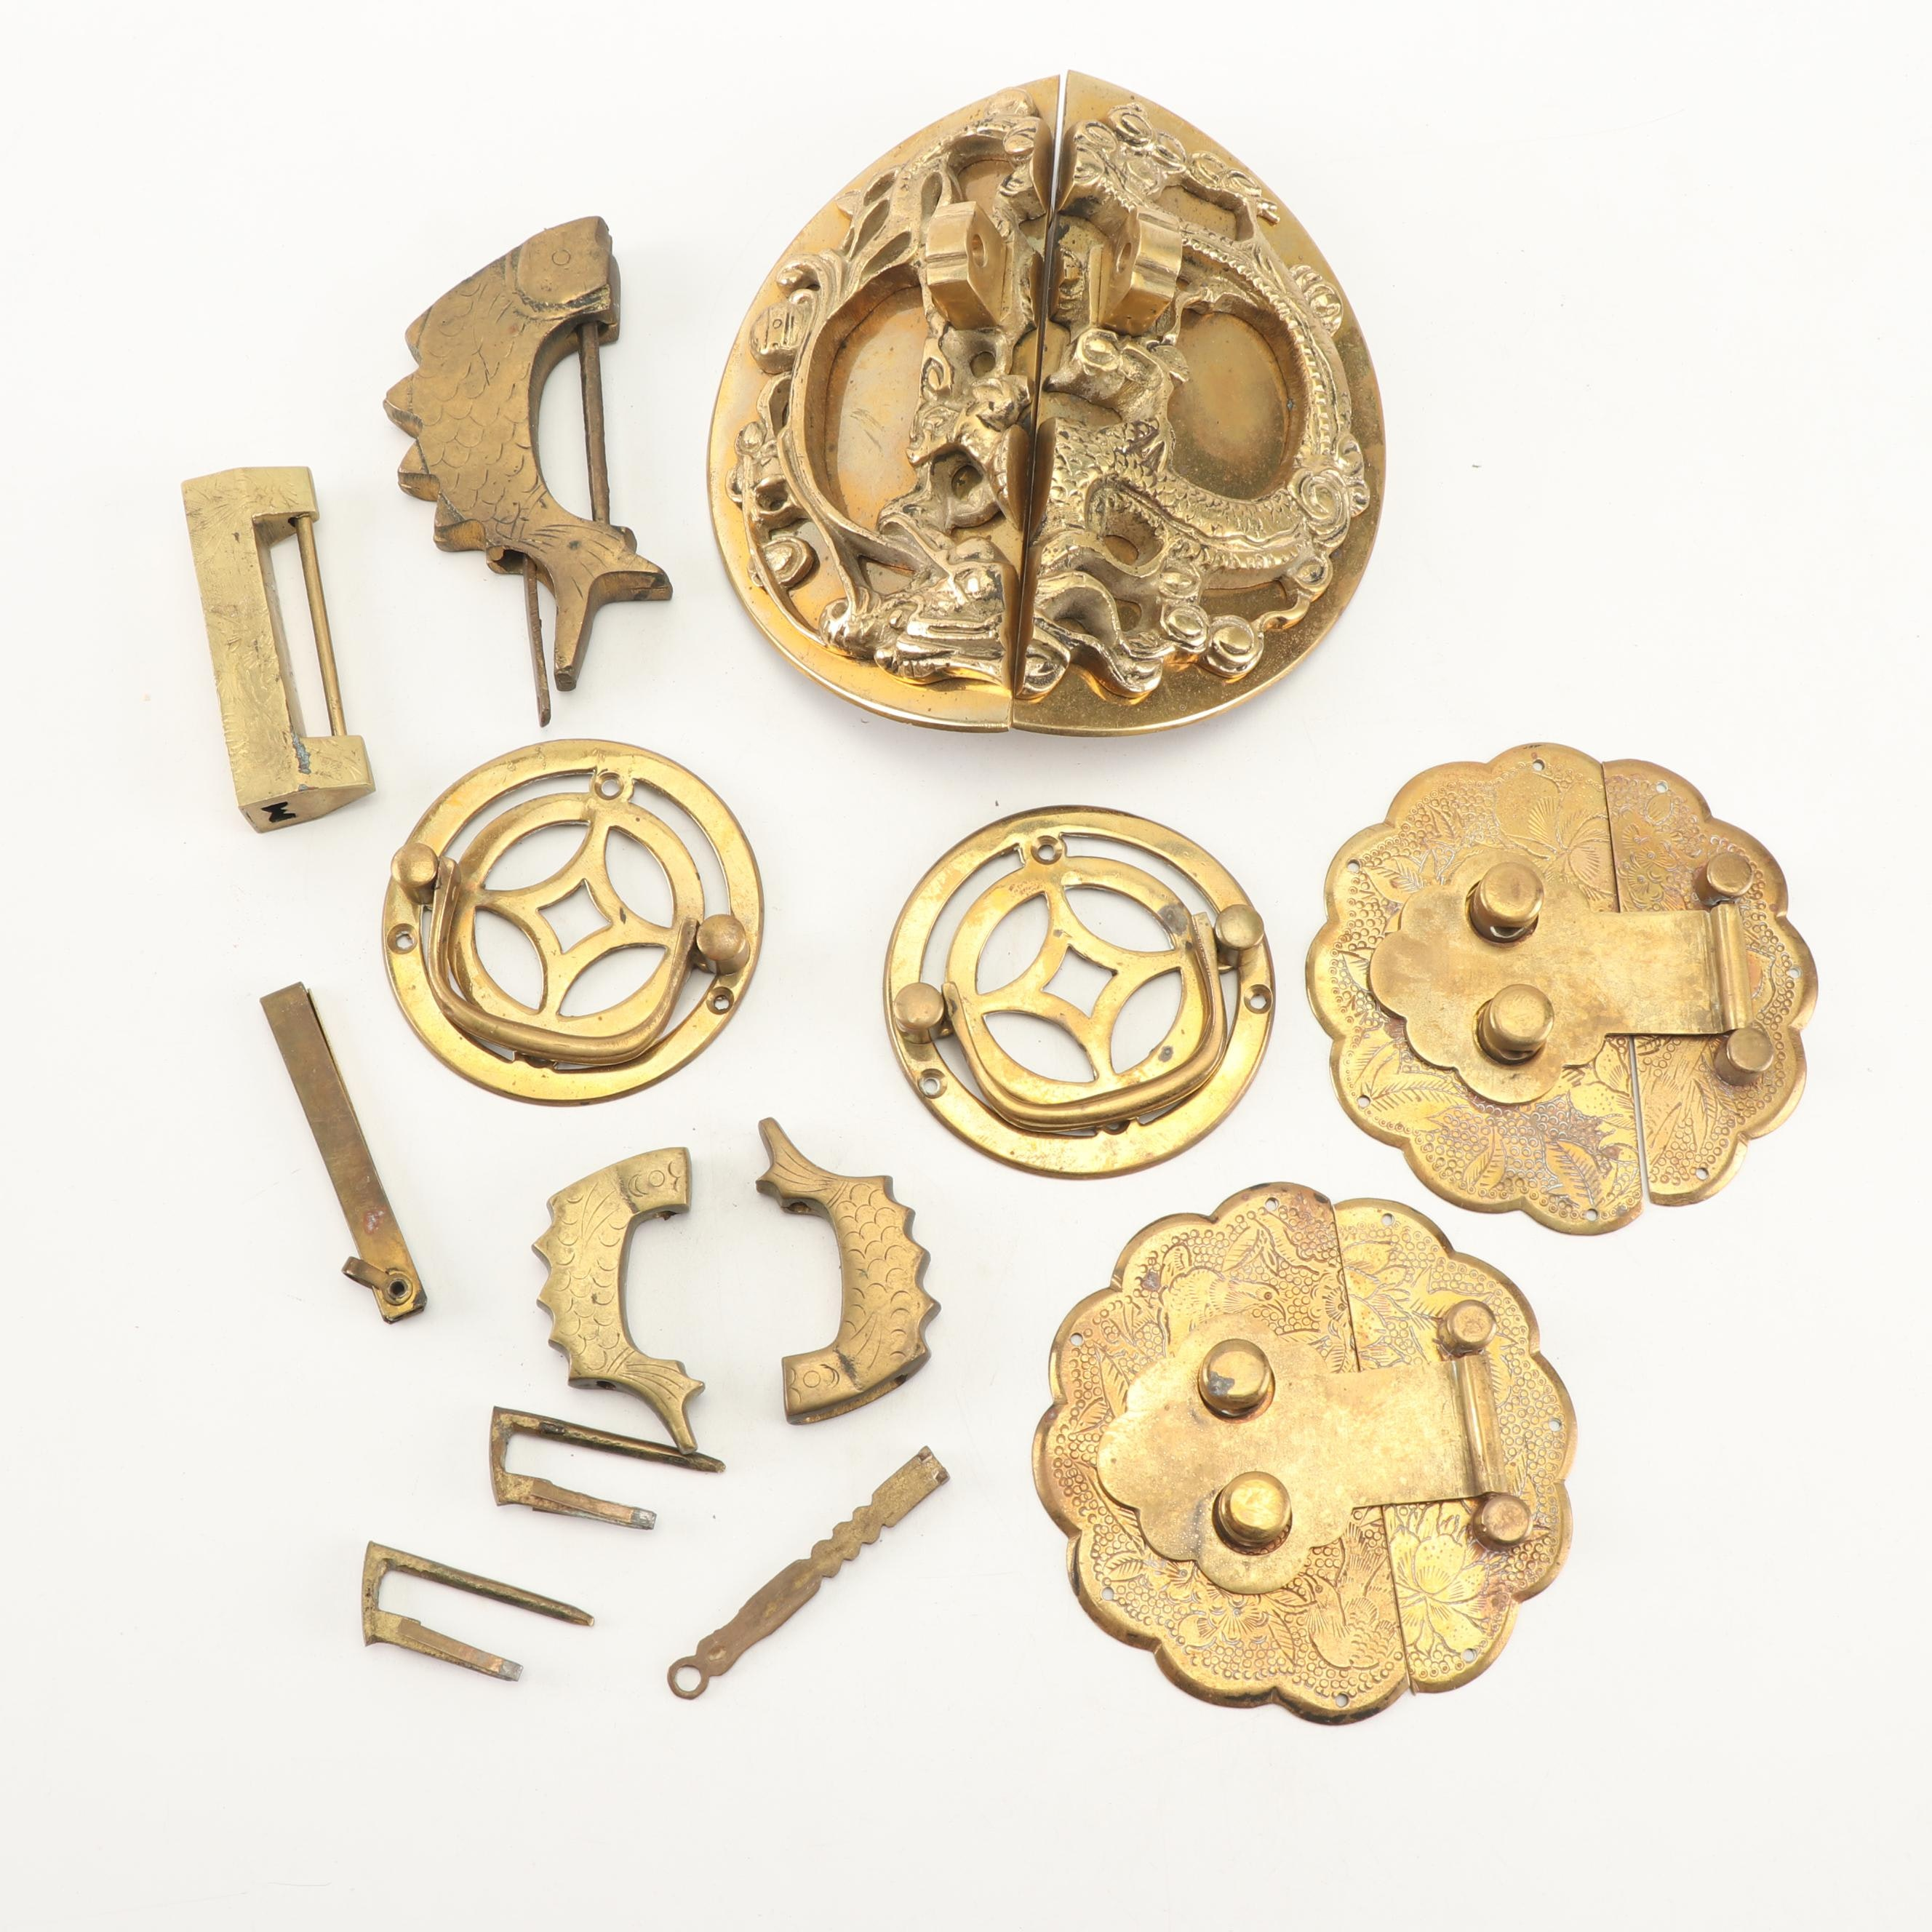 East Asian Brass Locks and Drawer Pulls, 20th Century